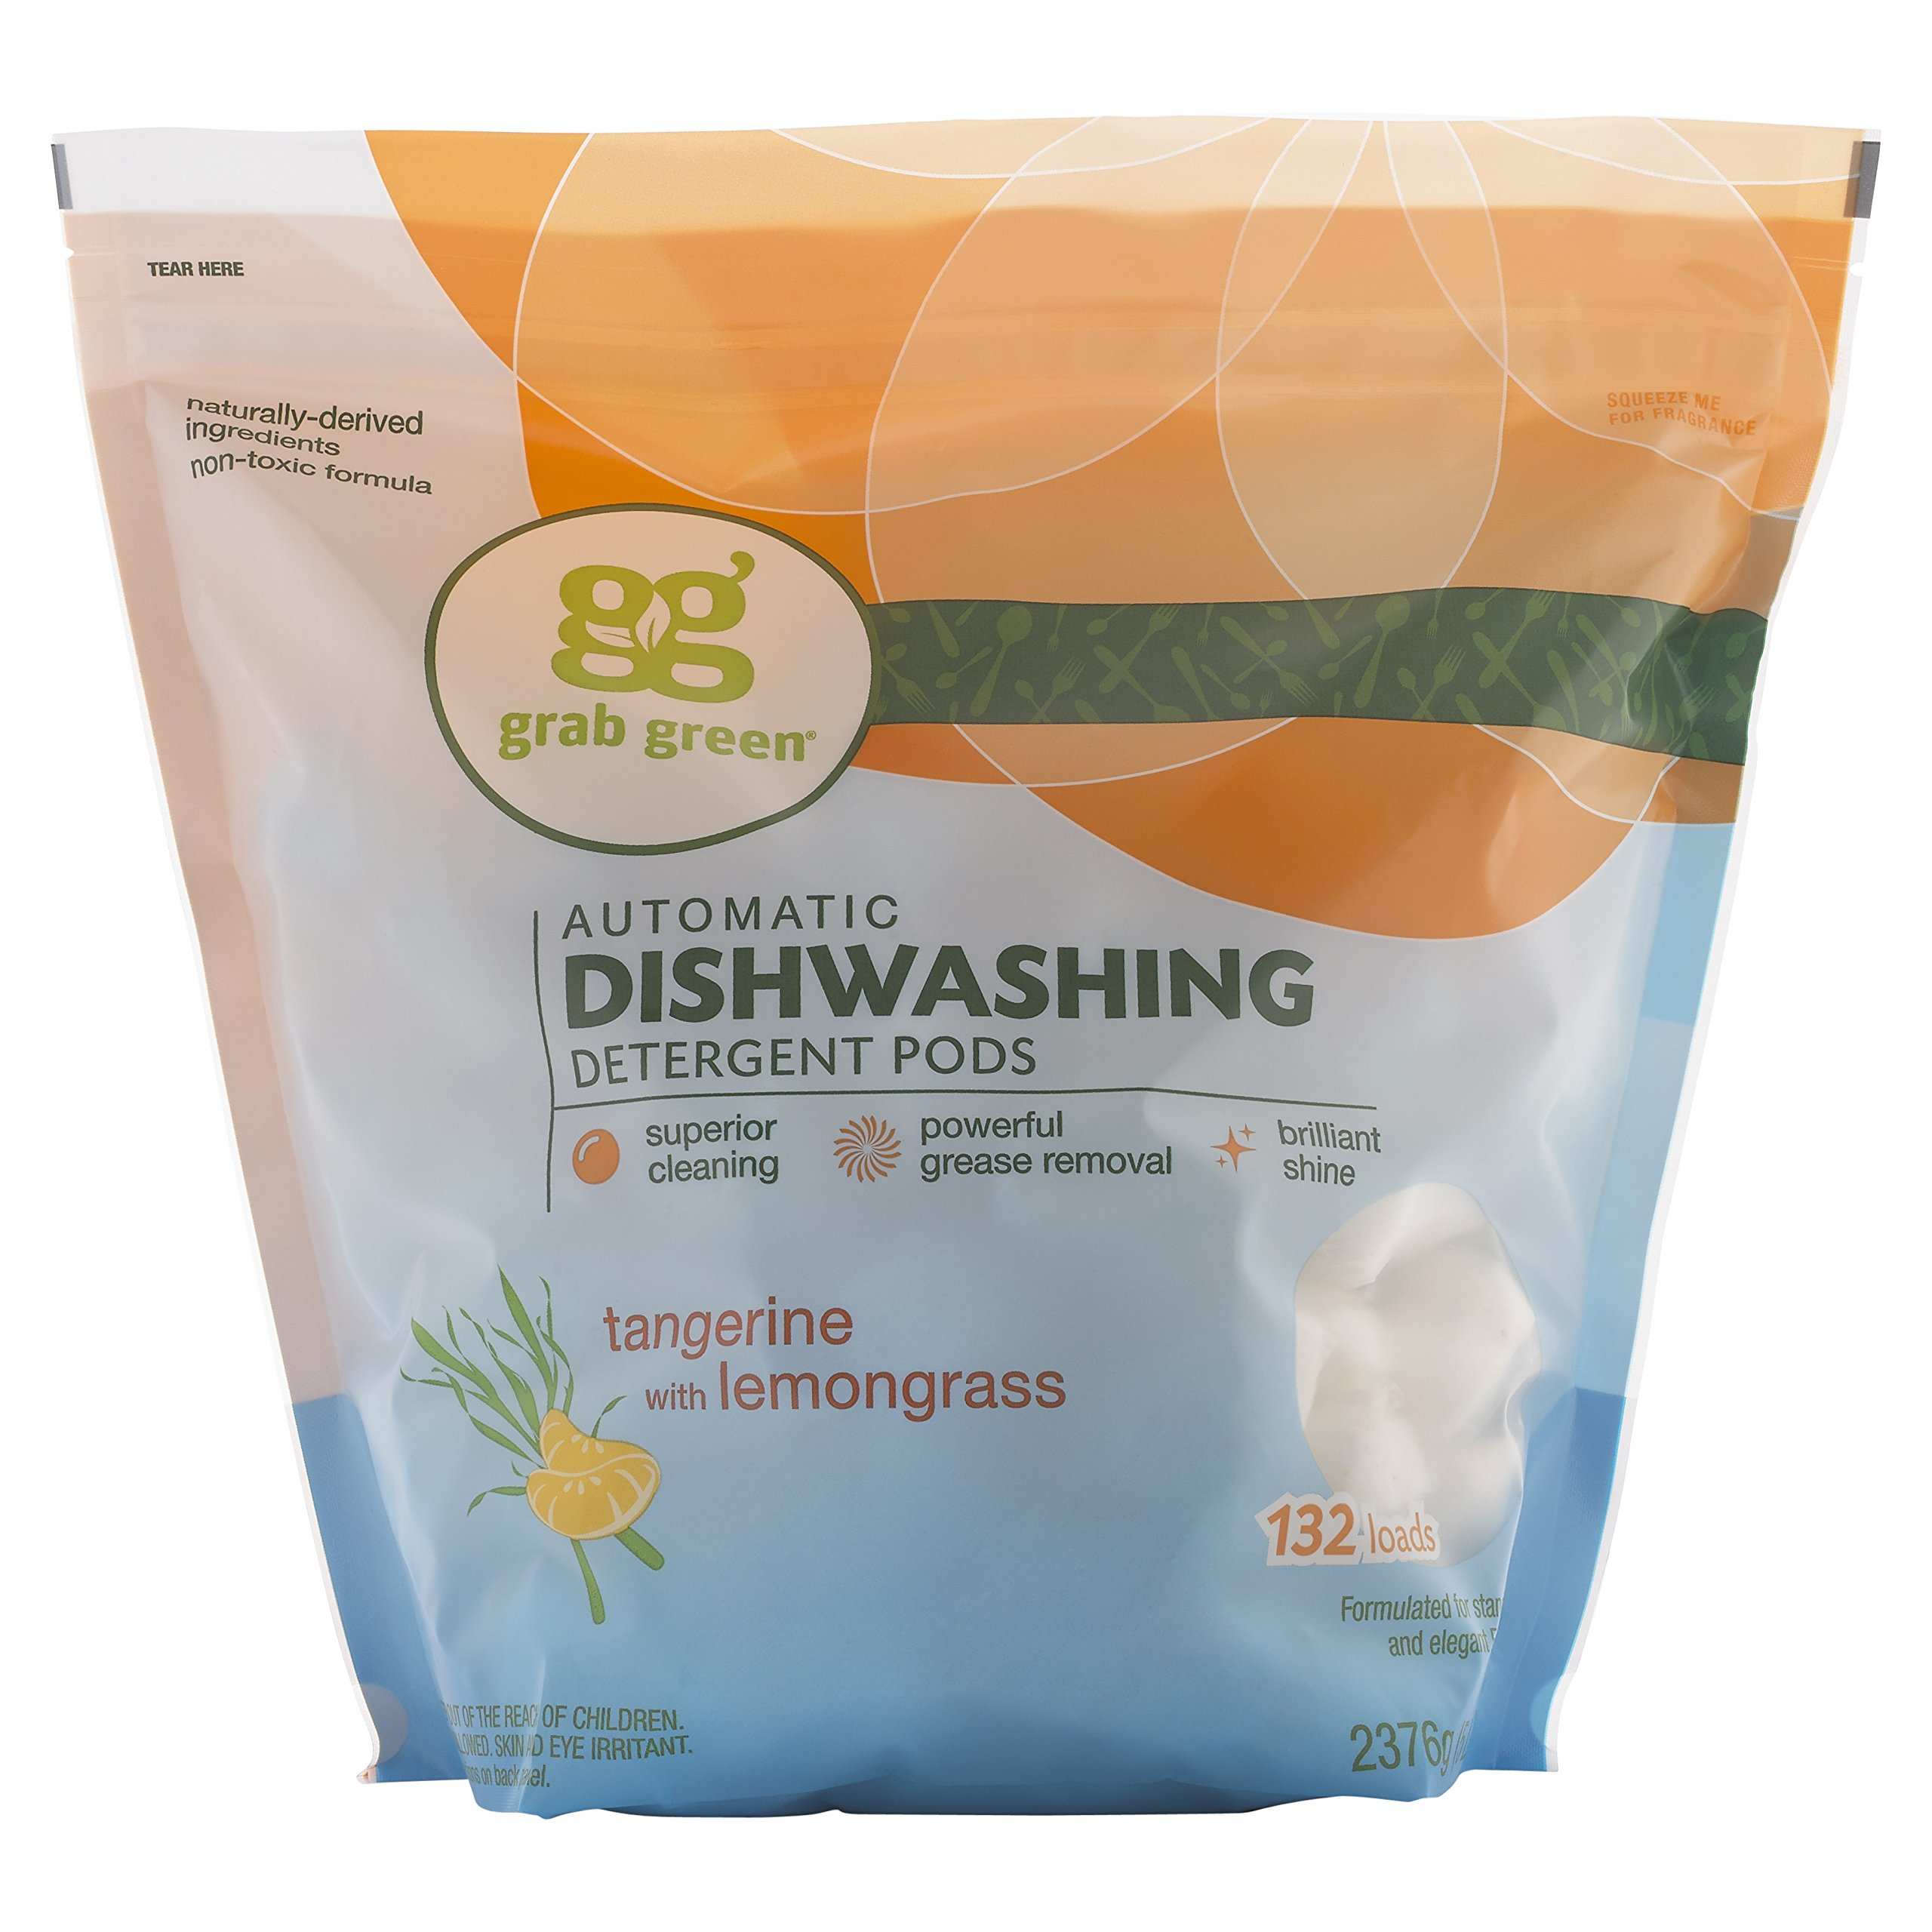 Grab Green Natural Automatic Dishwashing Detergent Pods, Tangerine with Lemongrass, 132 Loads